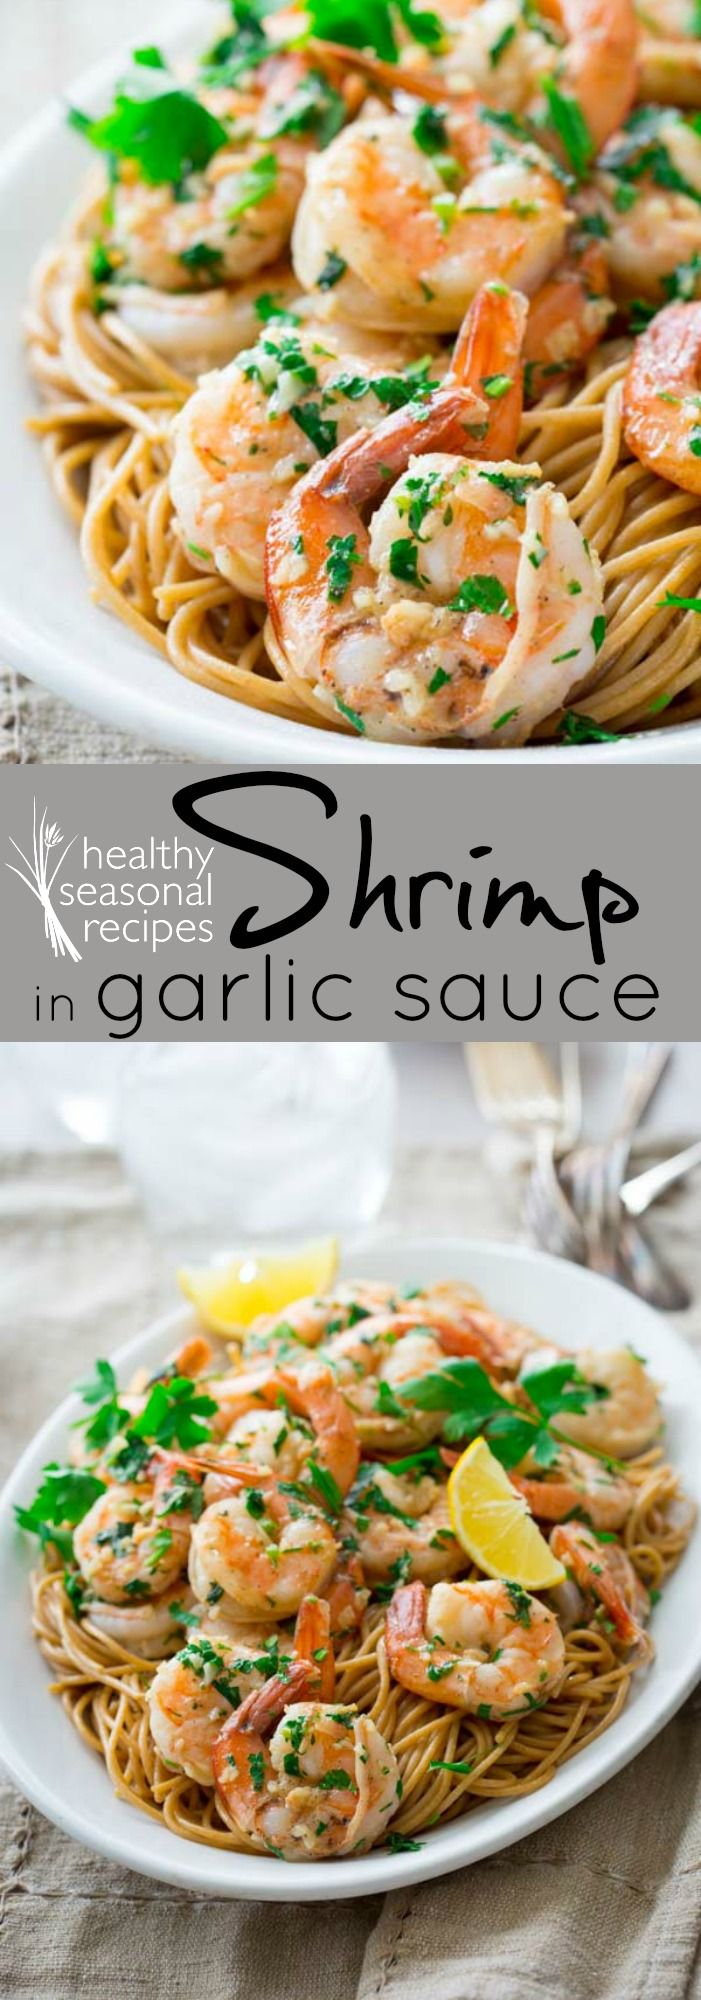 This Healthy Shrimp in Garlic Sauce is super easy to make and it's ready in only 20 minutes! It's naturally gluten-free too! - Healthy Seasonal Recipes